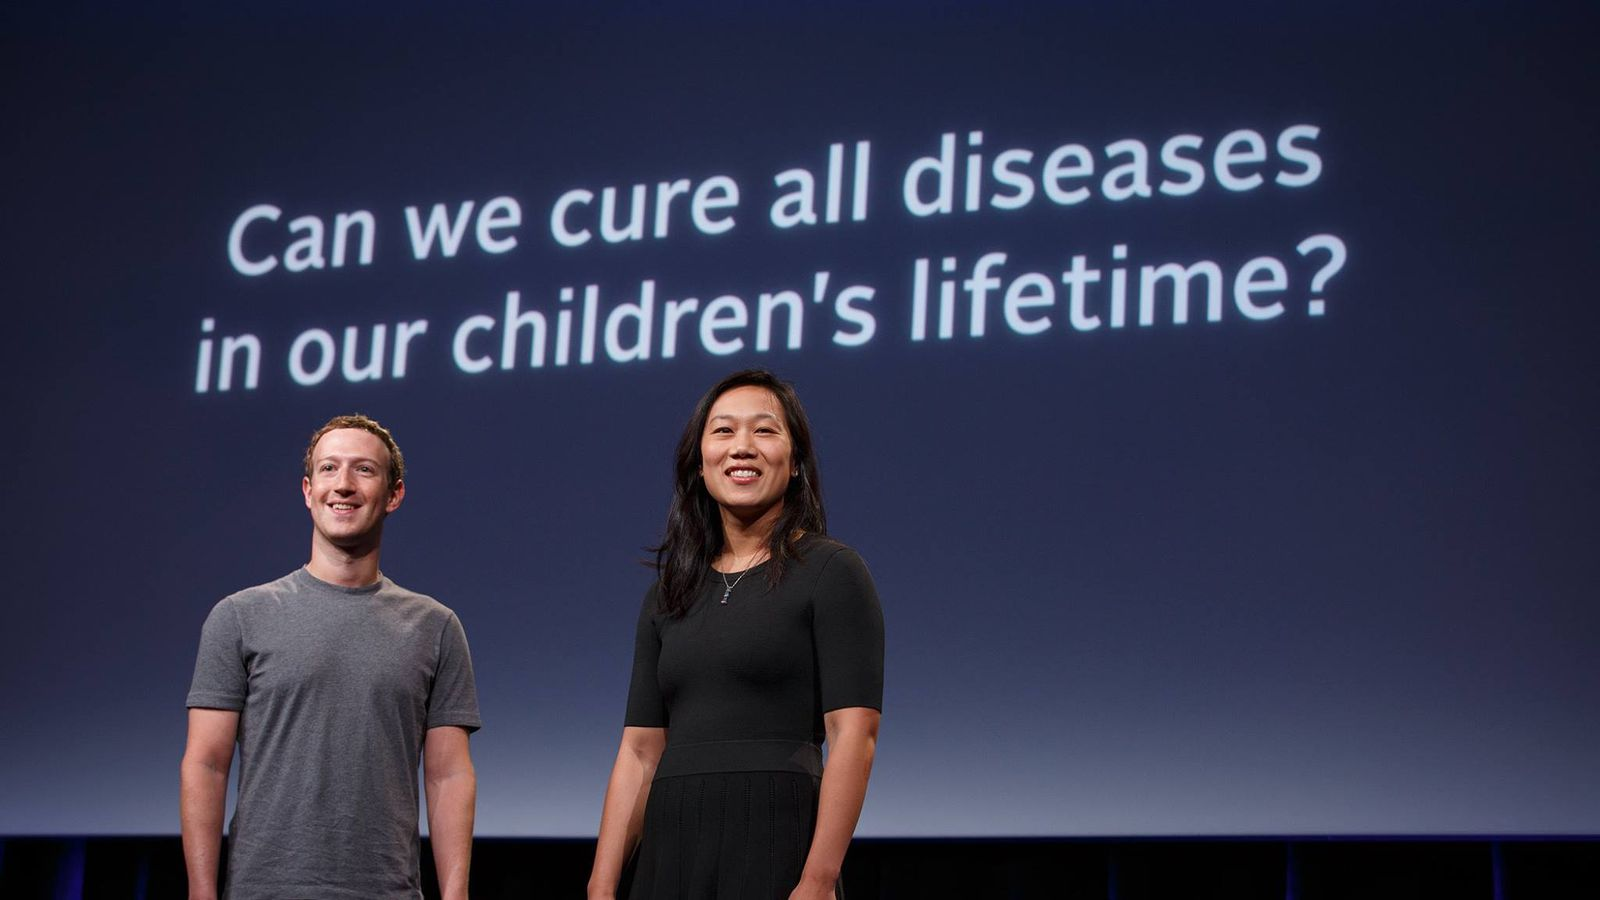 Facebook's Mark Zuckerberg and Priscilla Chan pledge $3 billion to cure all diseases